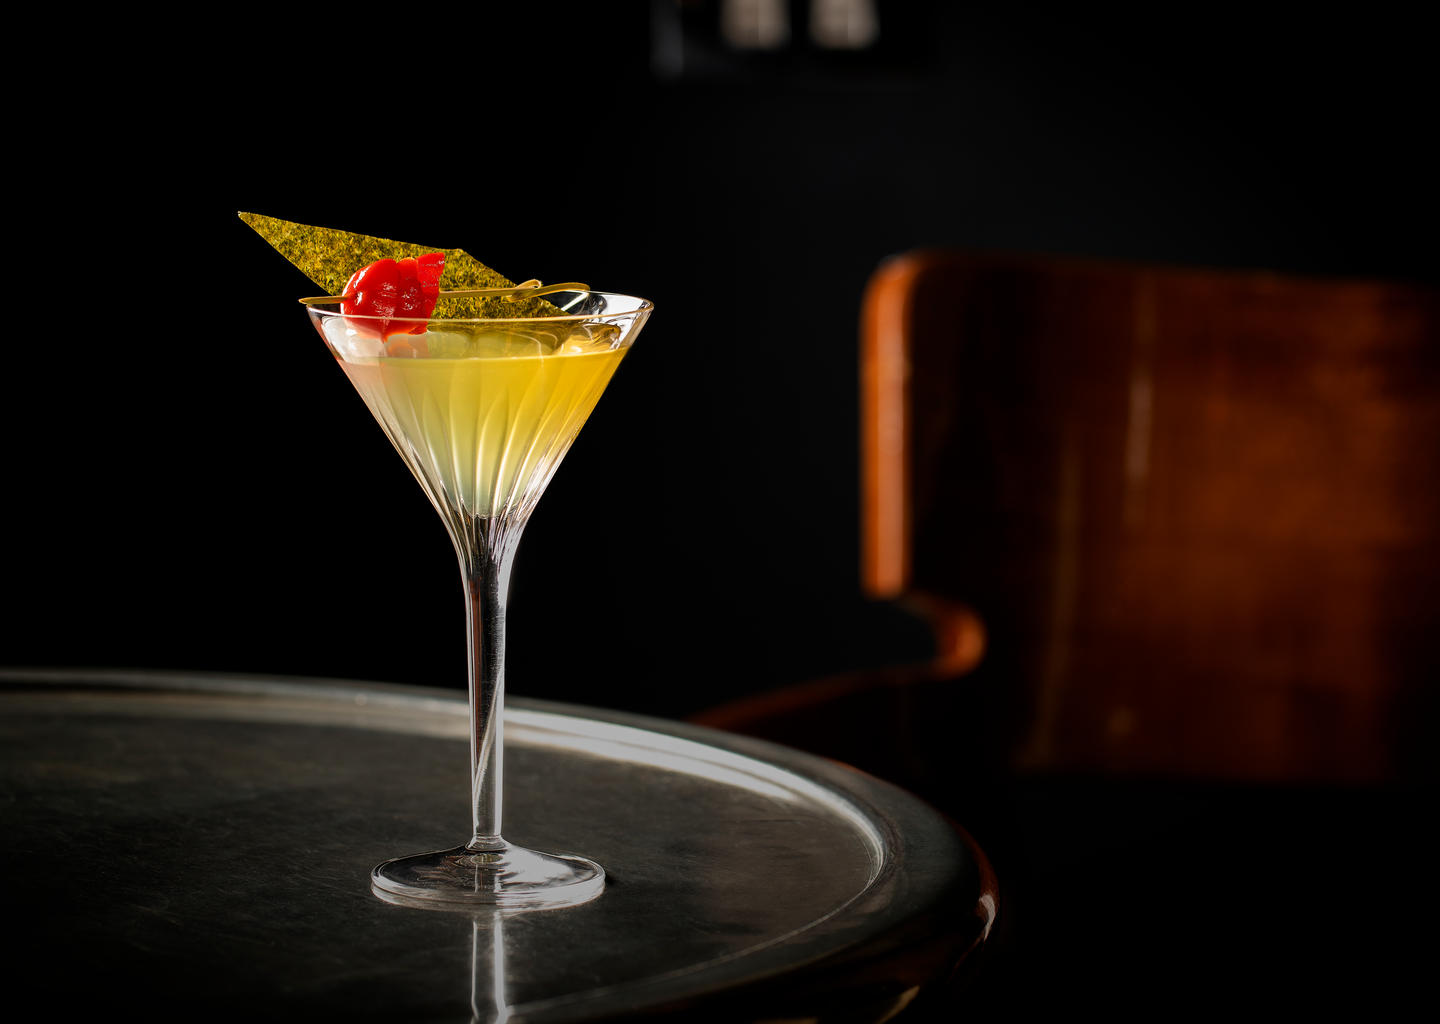 The Coastal Martini at Anthracite London's Best Martini